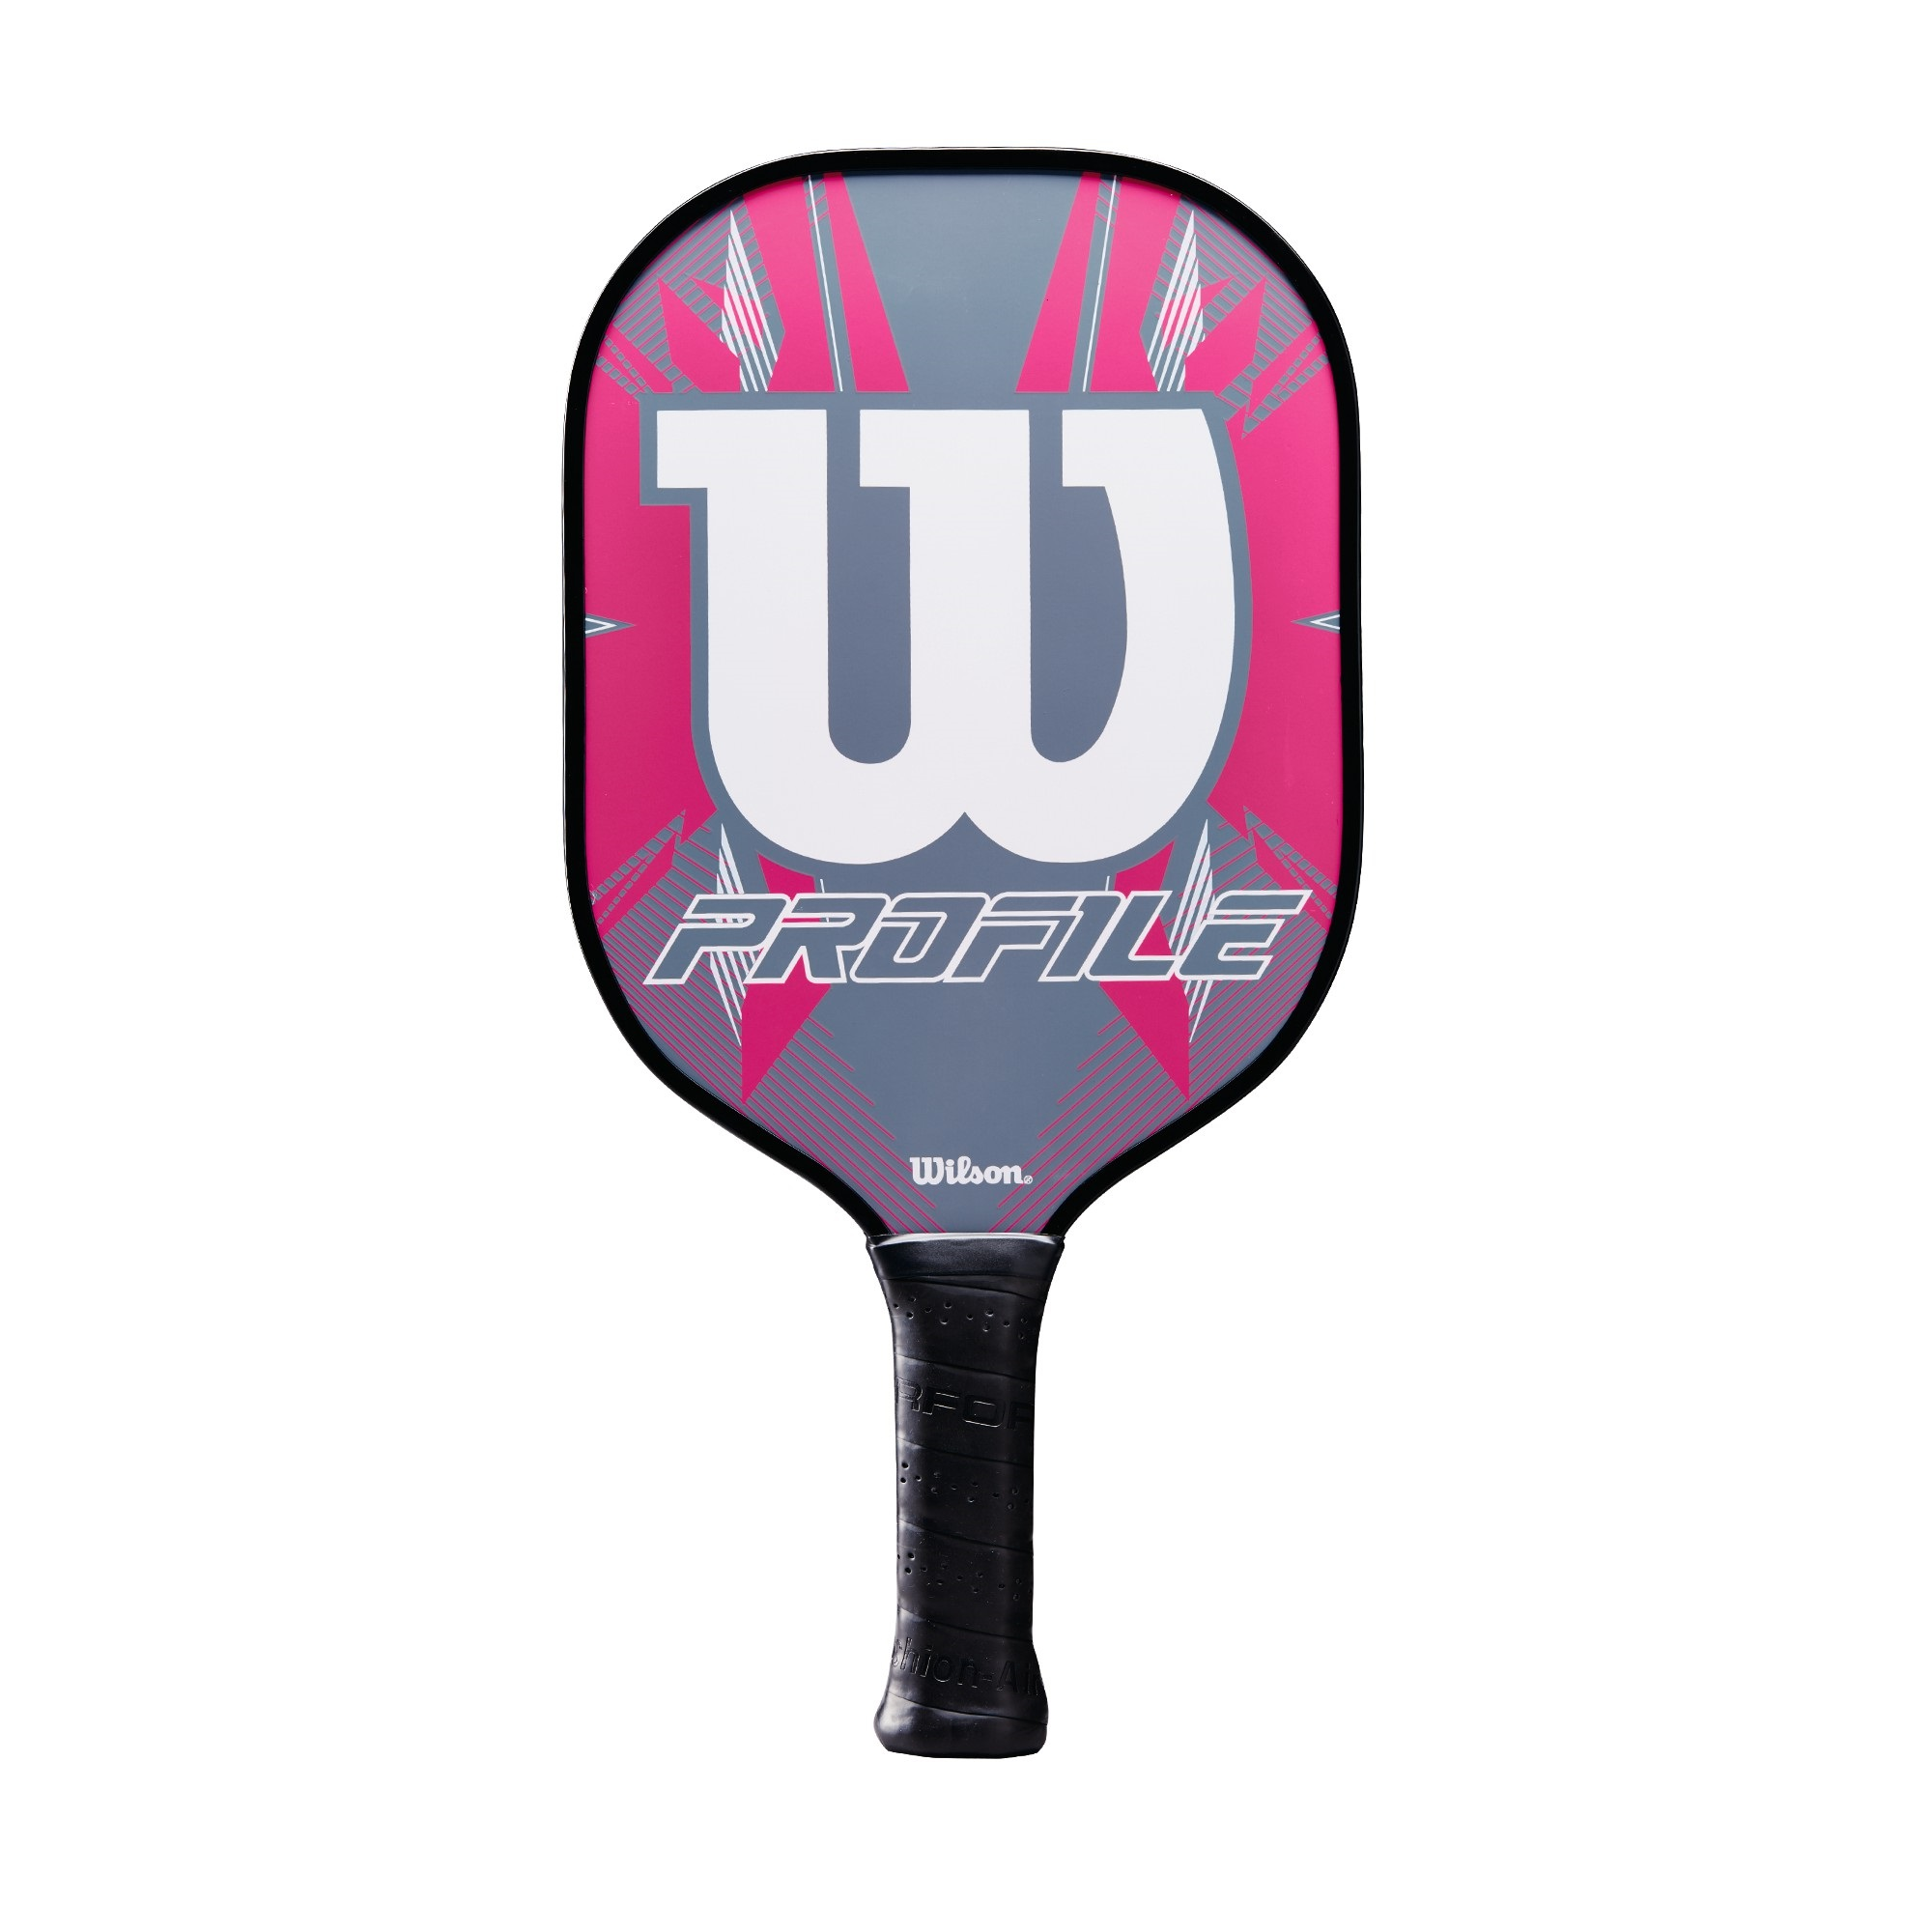 Wilson Profile Picklball Paddle by Wilson Sporting Goods